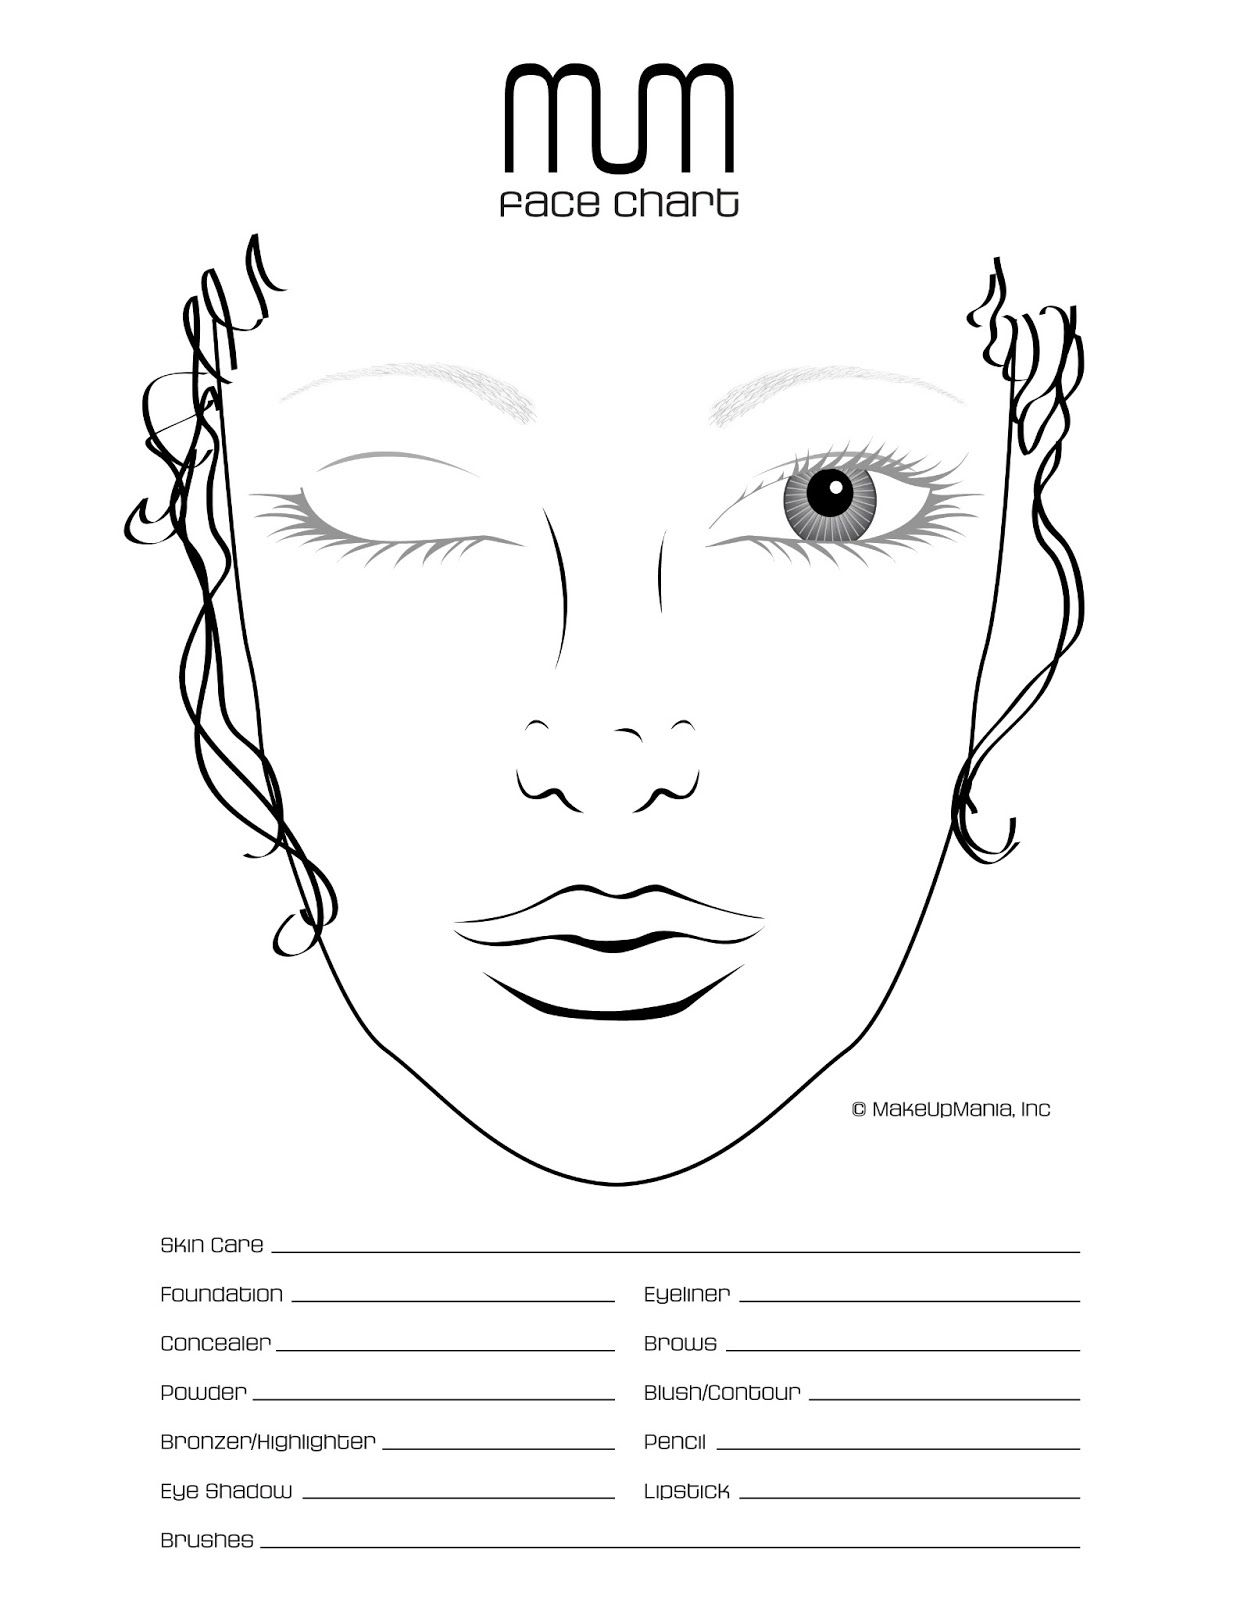 Blank Face Chart Temples Male And Female Hi All Hope You Had Good Start For This Year I Had